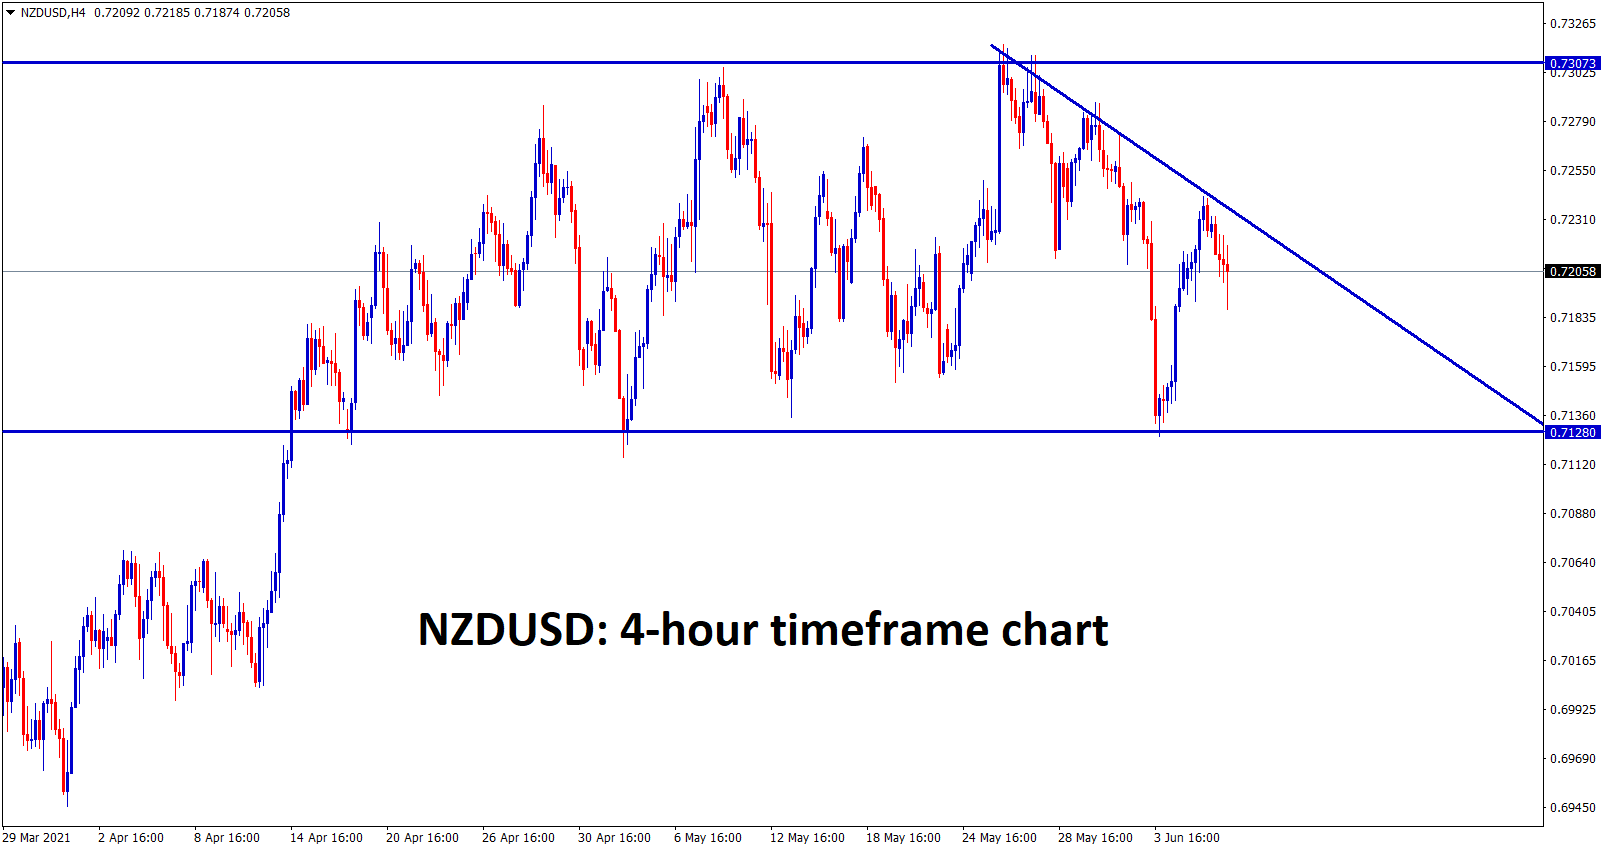 NZDUSD is consolidating and forming a lower highs wait for breakout from this consolidation pattern